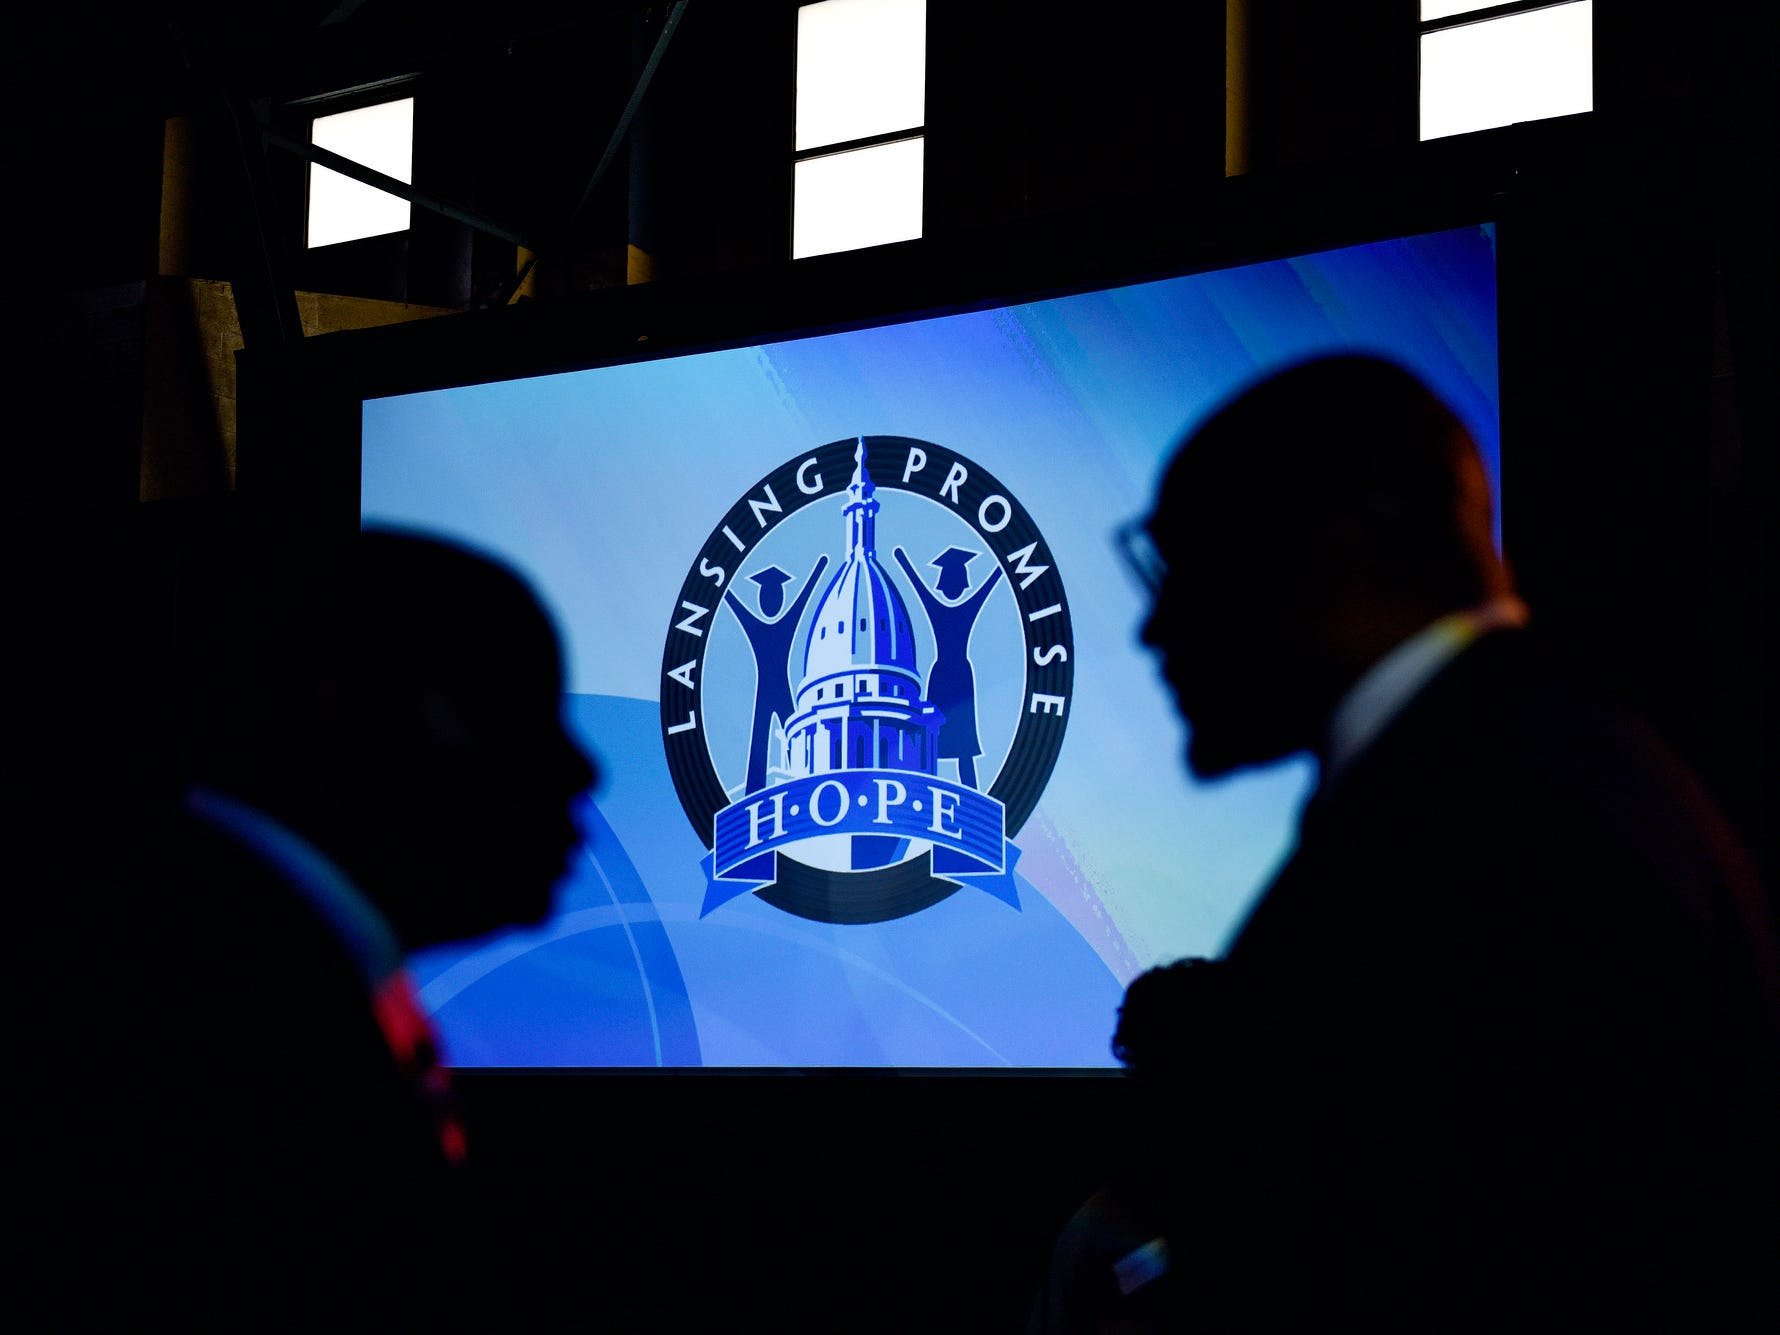 The Lansing Promise logo is displayed on a large screen during the fifth-annual Lansing Promise Dinner on Thursday, April 25, 2019, at the Don Johnson Fieldhouse in Lansing.